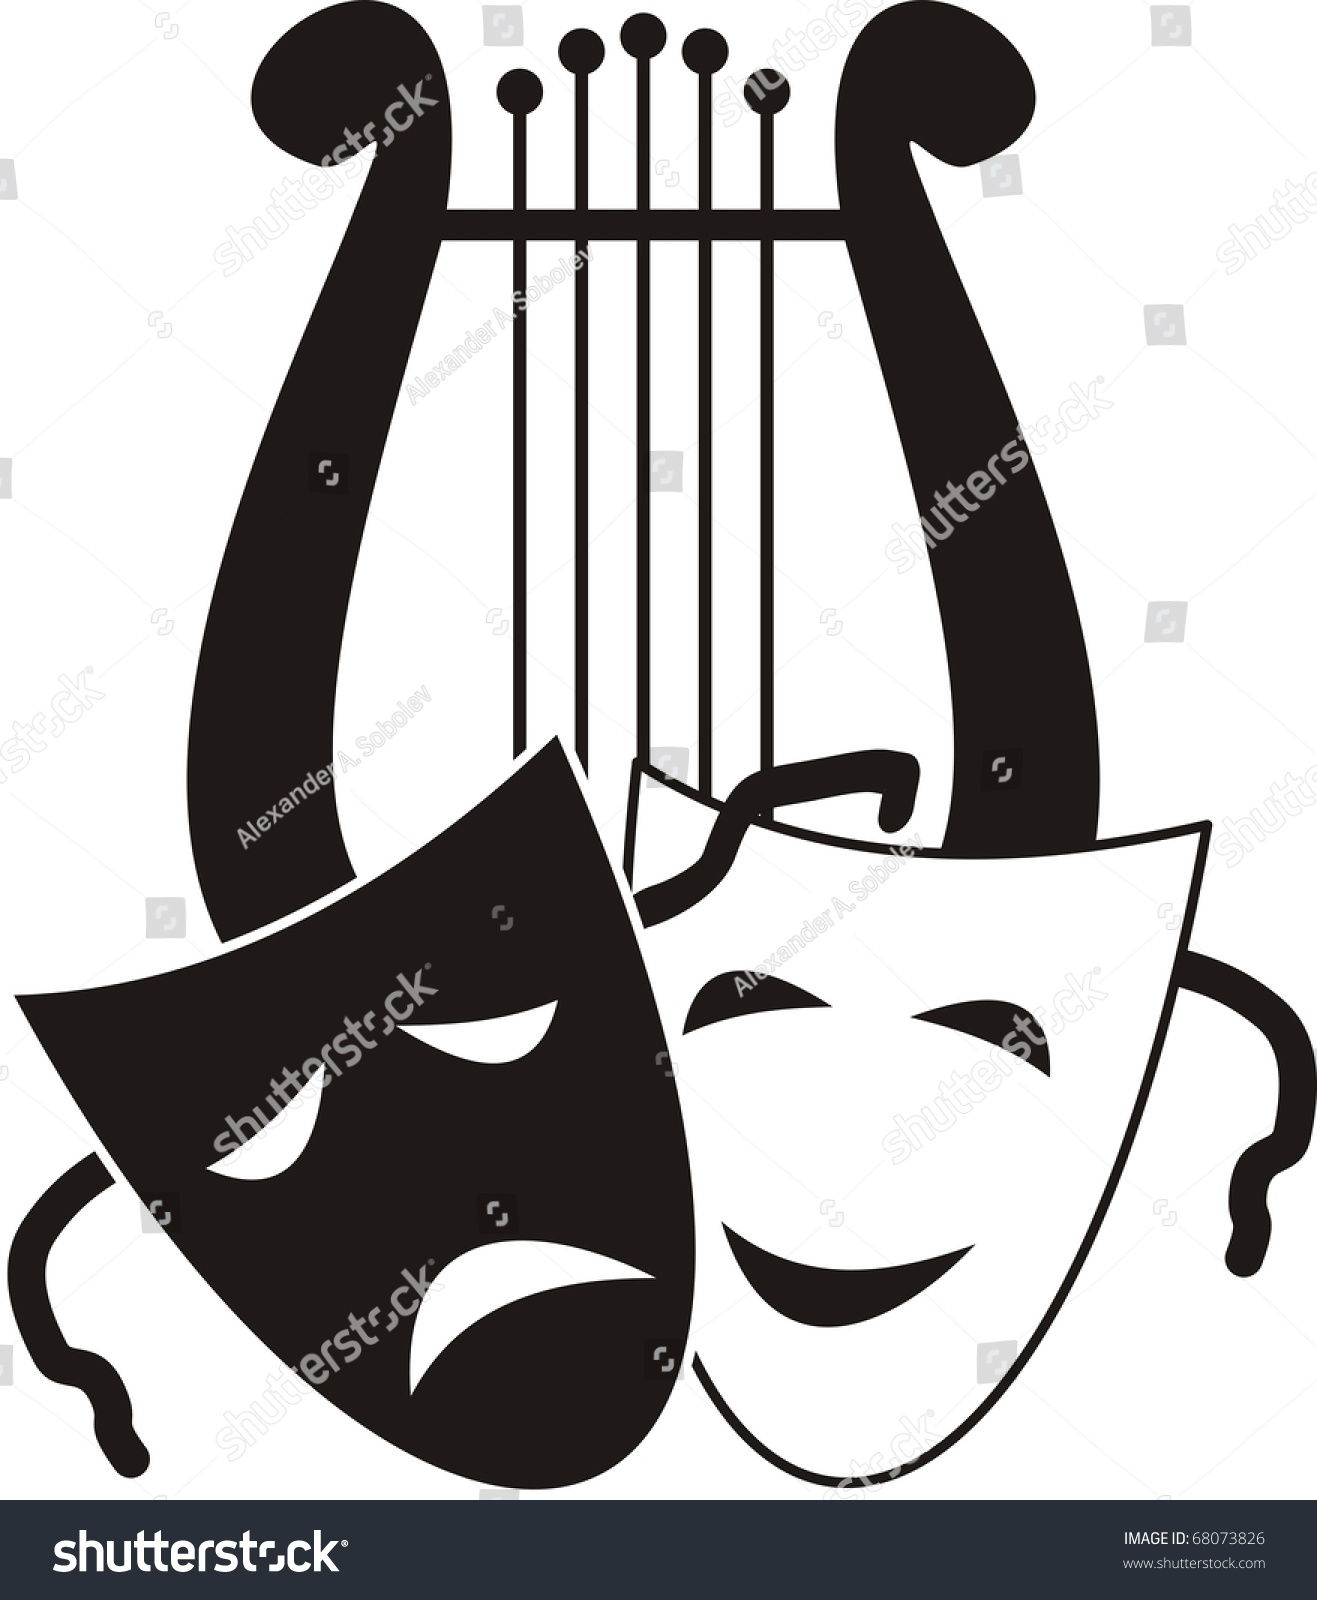 Vector Lyre Masks Symbols Music Arts Stock Vector 68073826 ...